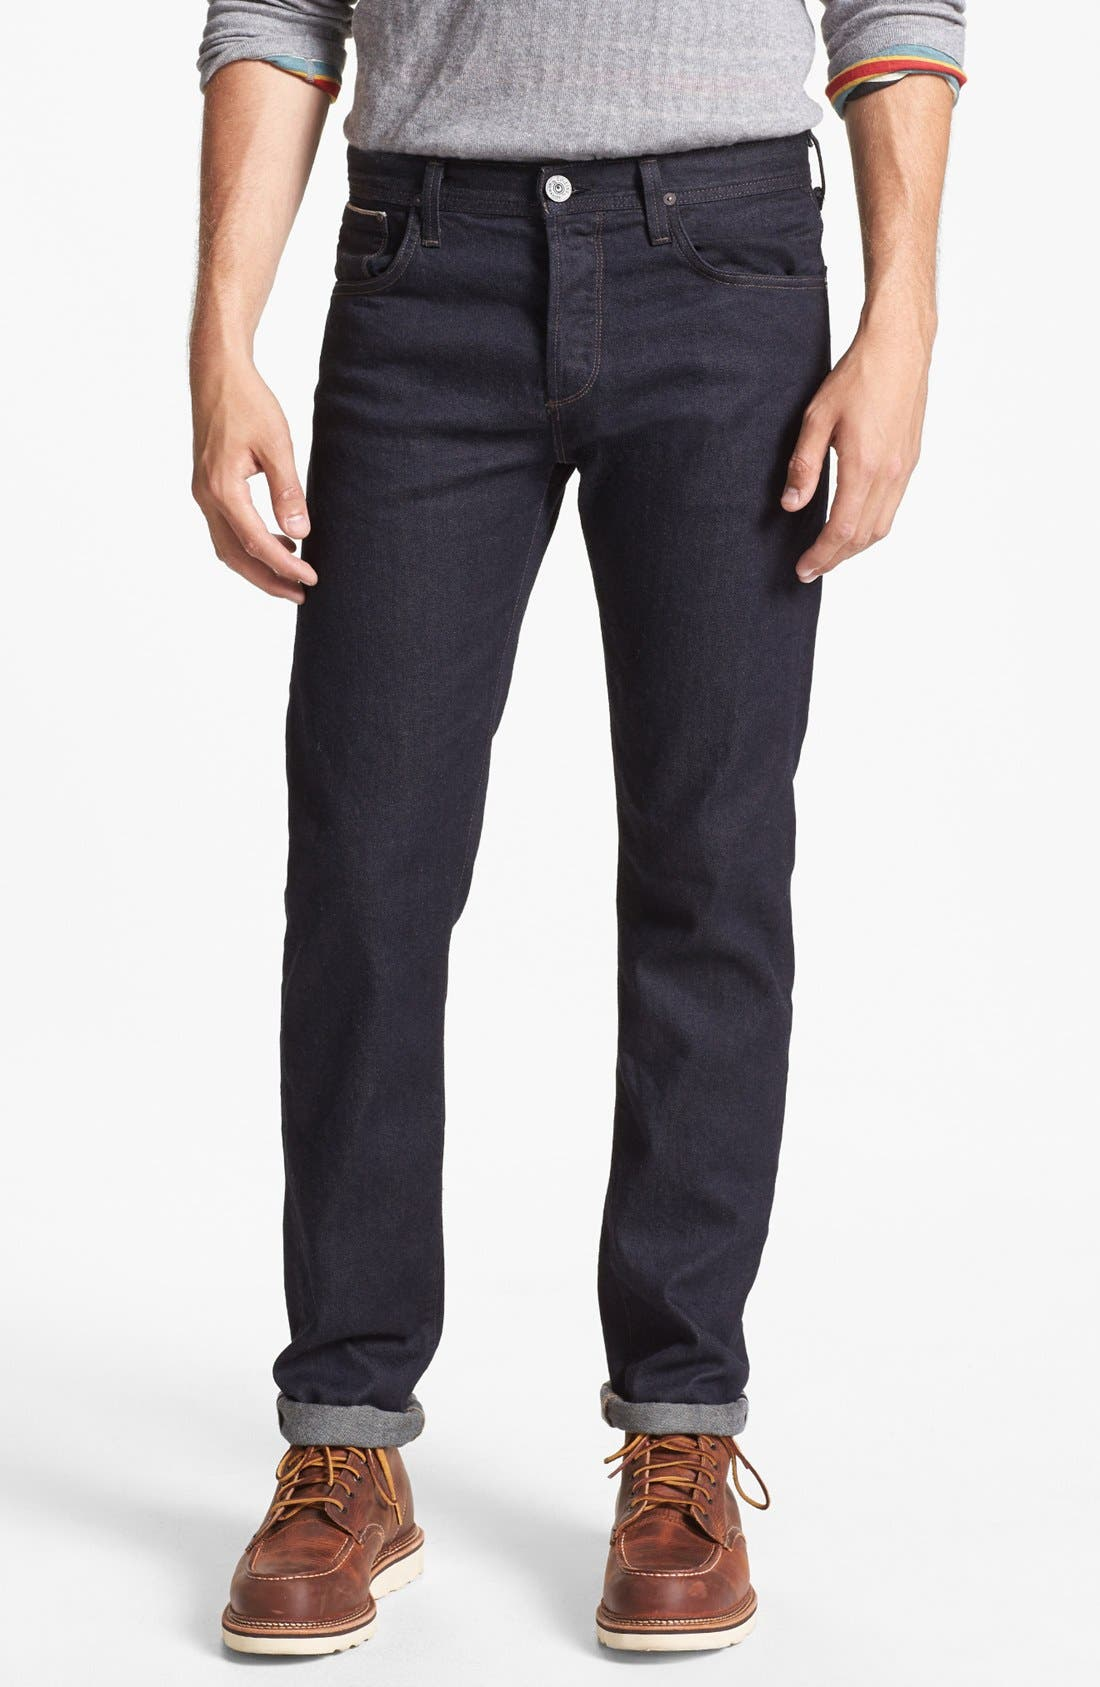 Alternate Image 1 Selected - Citizens of Humanity 'Core' Slim Fit Selvedge Jeans (Frankie)